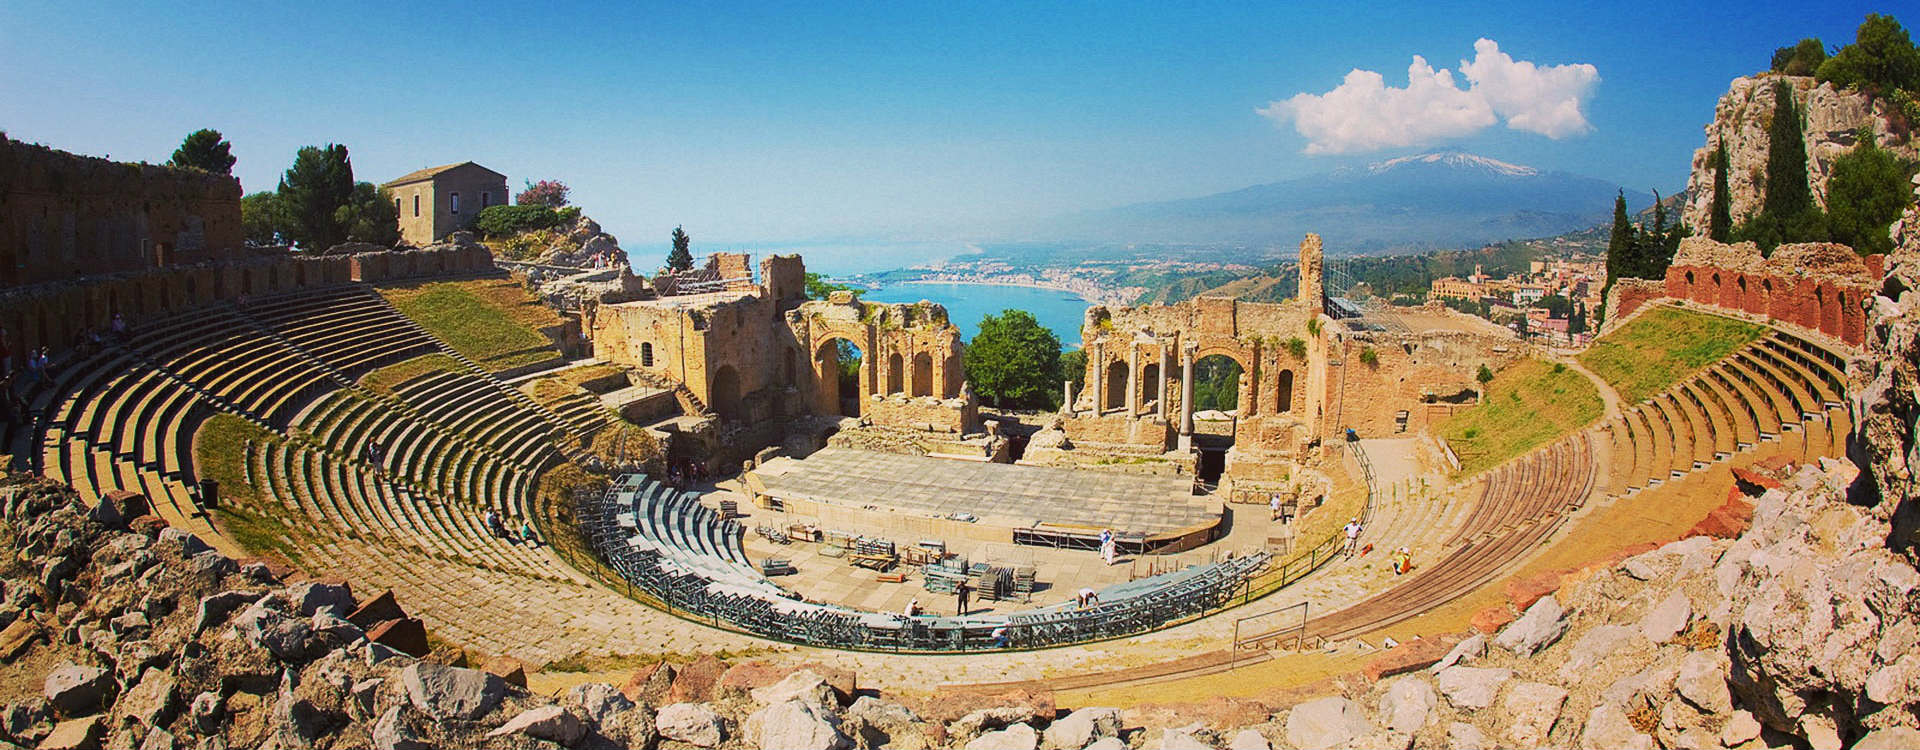 Taormina Shore Excursion - Private Tour